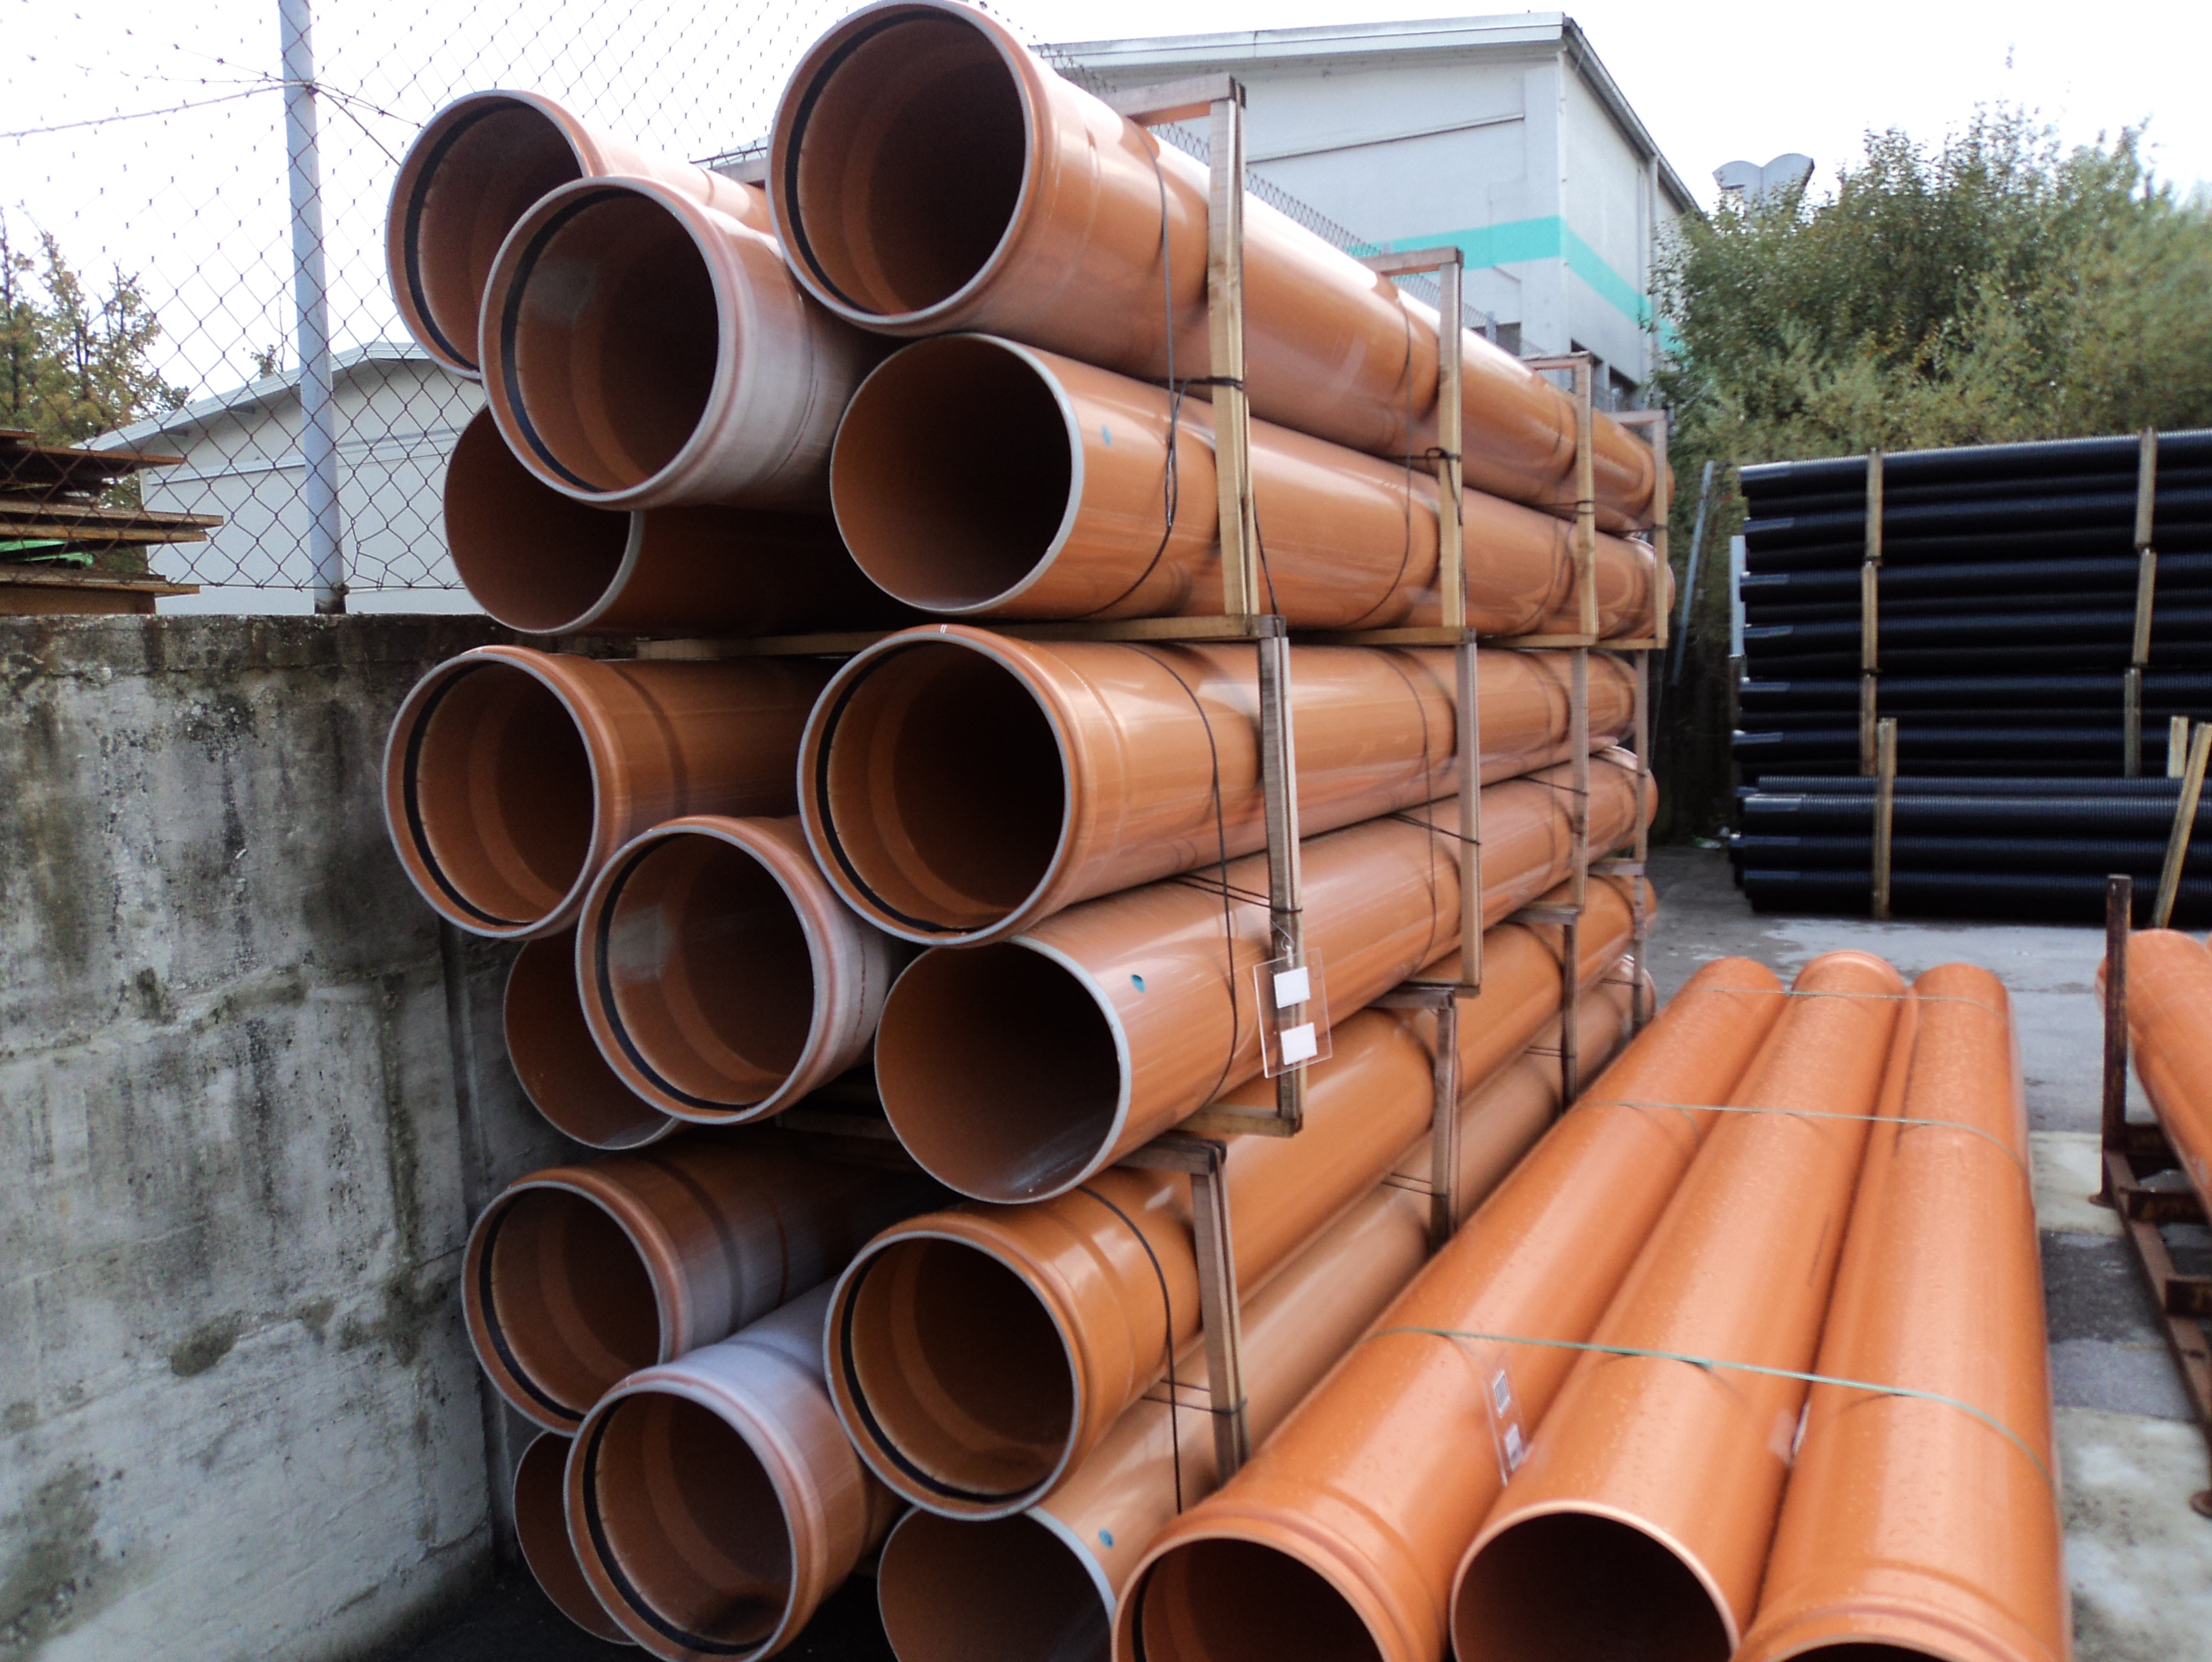 A stack of reddish plastic pipes.